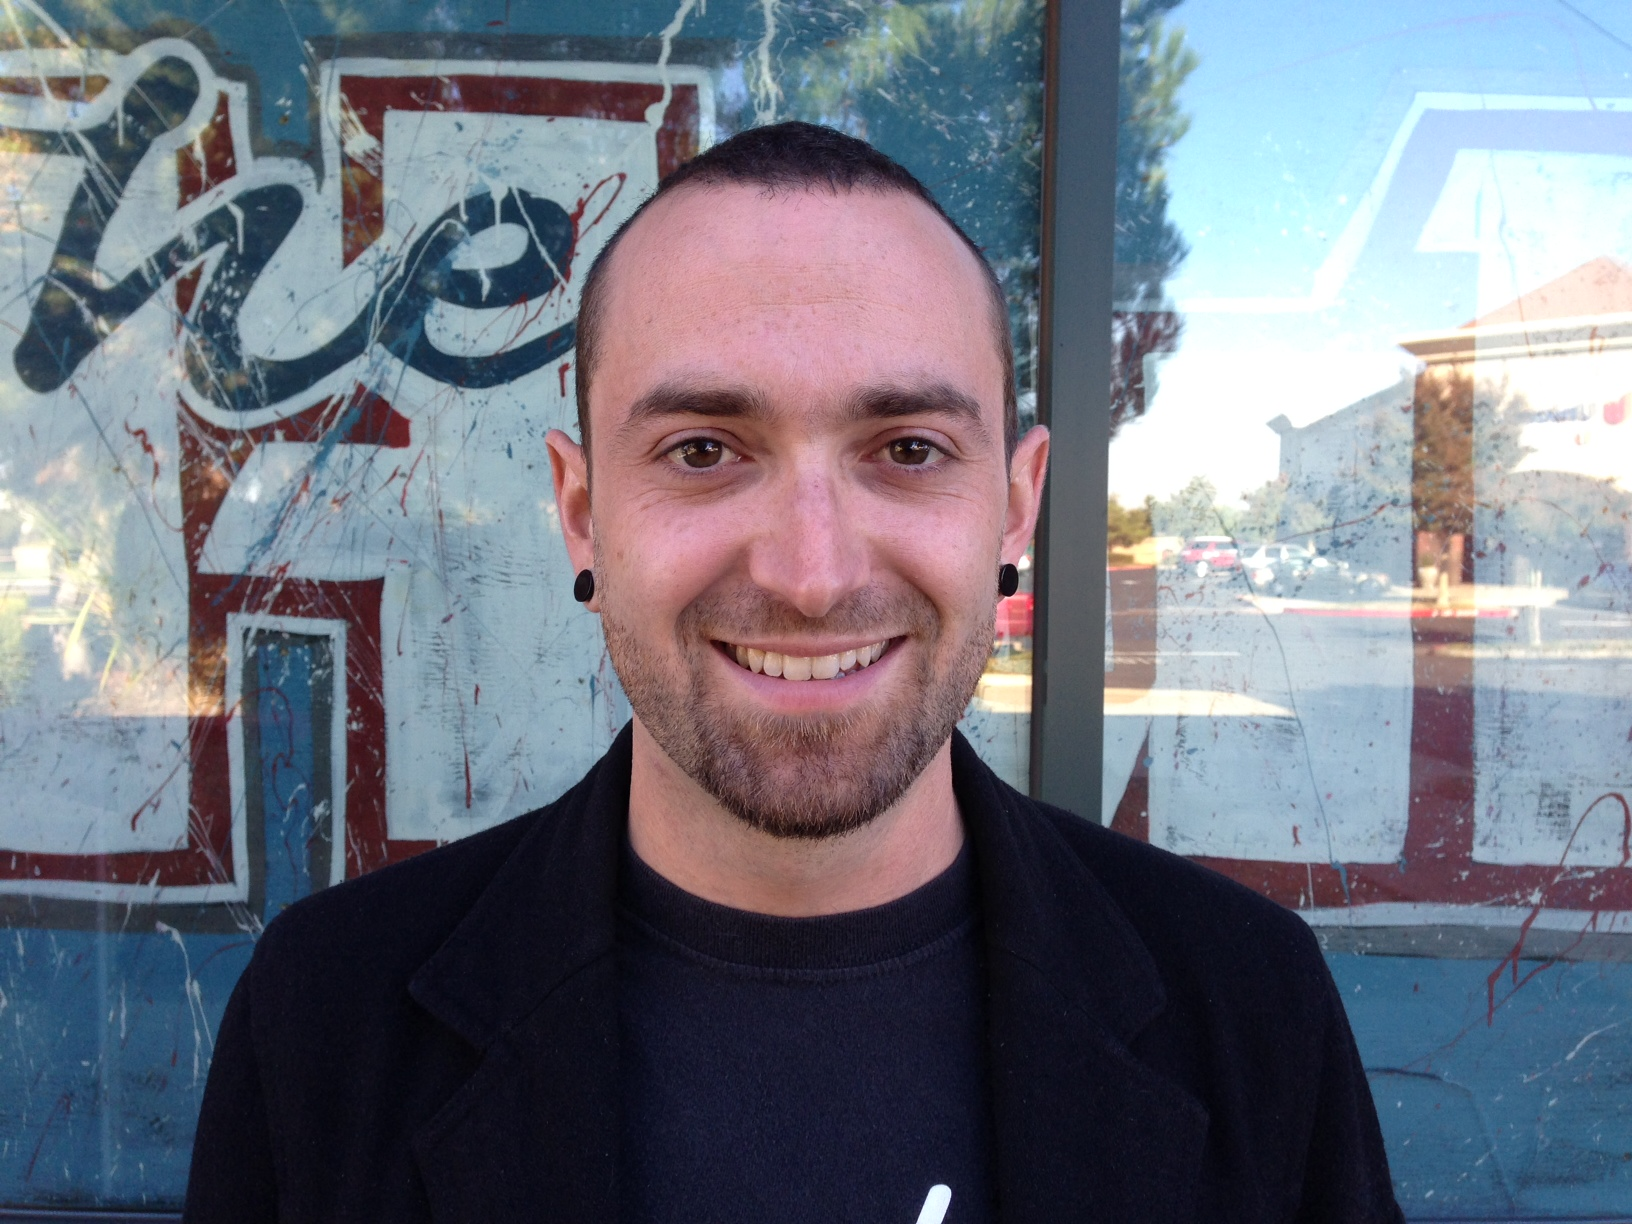 Name:  David Menudo   Nickname: Davey Rocket  Role: General Manager and all around nice guy  Certifications: Certified Pro Bike Mechanic, M.S. Russian Literature from Yale, CPR, B.S.Political Science from Columbia. Also a member of the Phoenix.   Factoid: Not only is David the Hubs fearless leader he is also an accomplished musician. Attention Ladies: Single Alert. He also rows Crew.